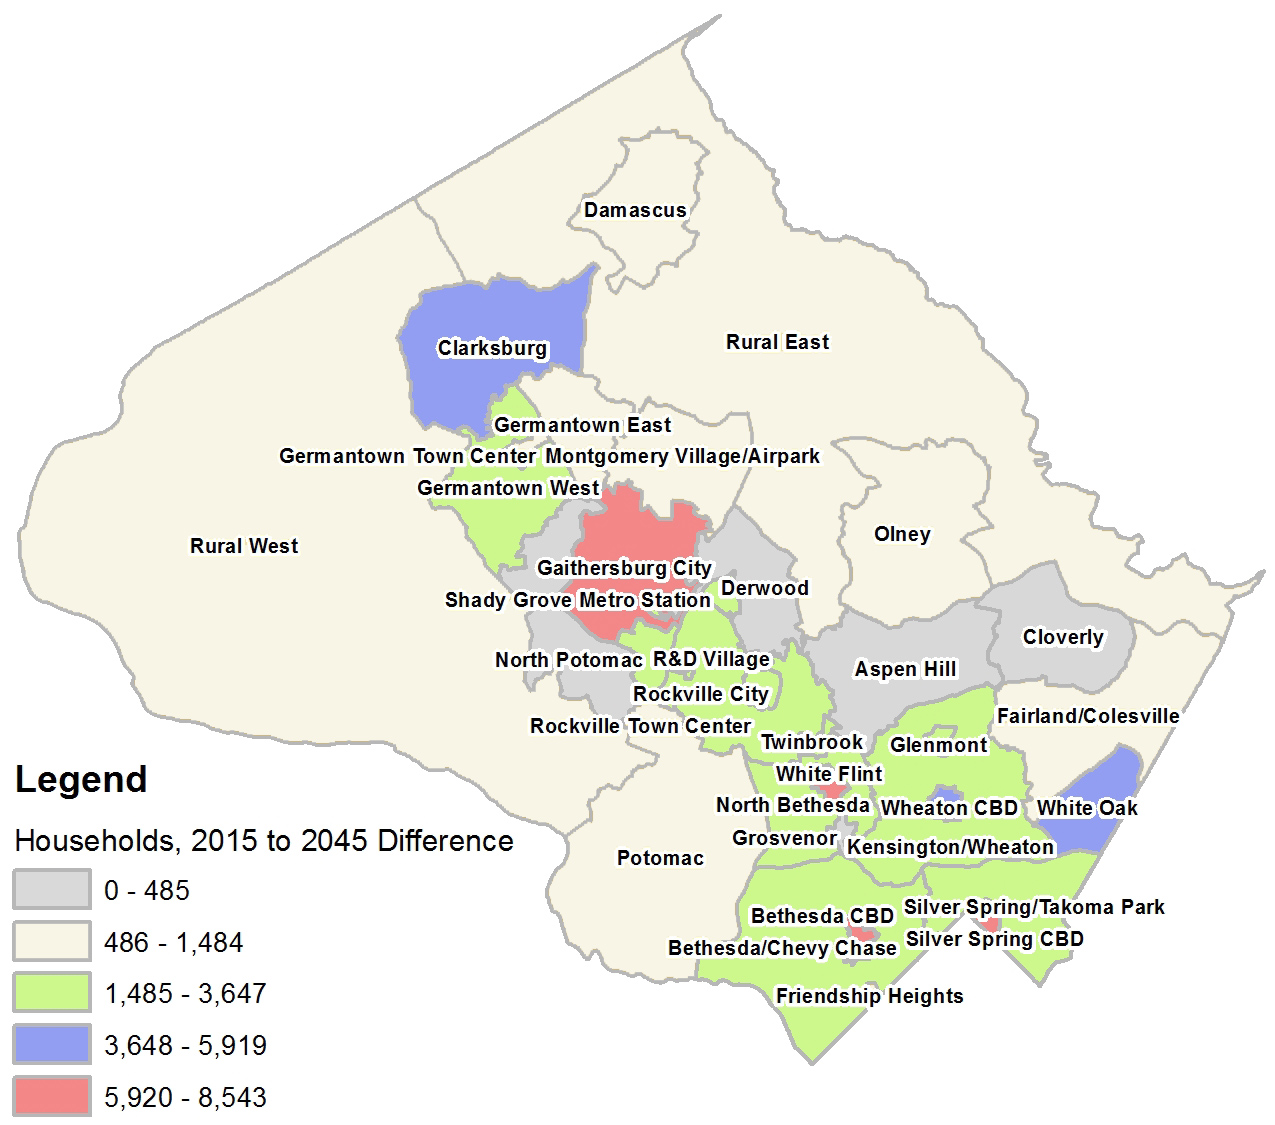 Household Change Round 9.0 - 2015 to 2045